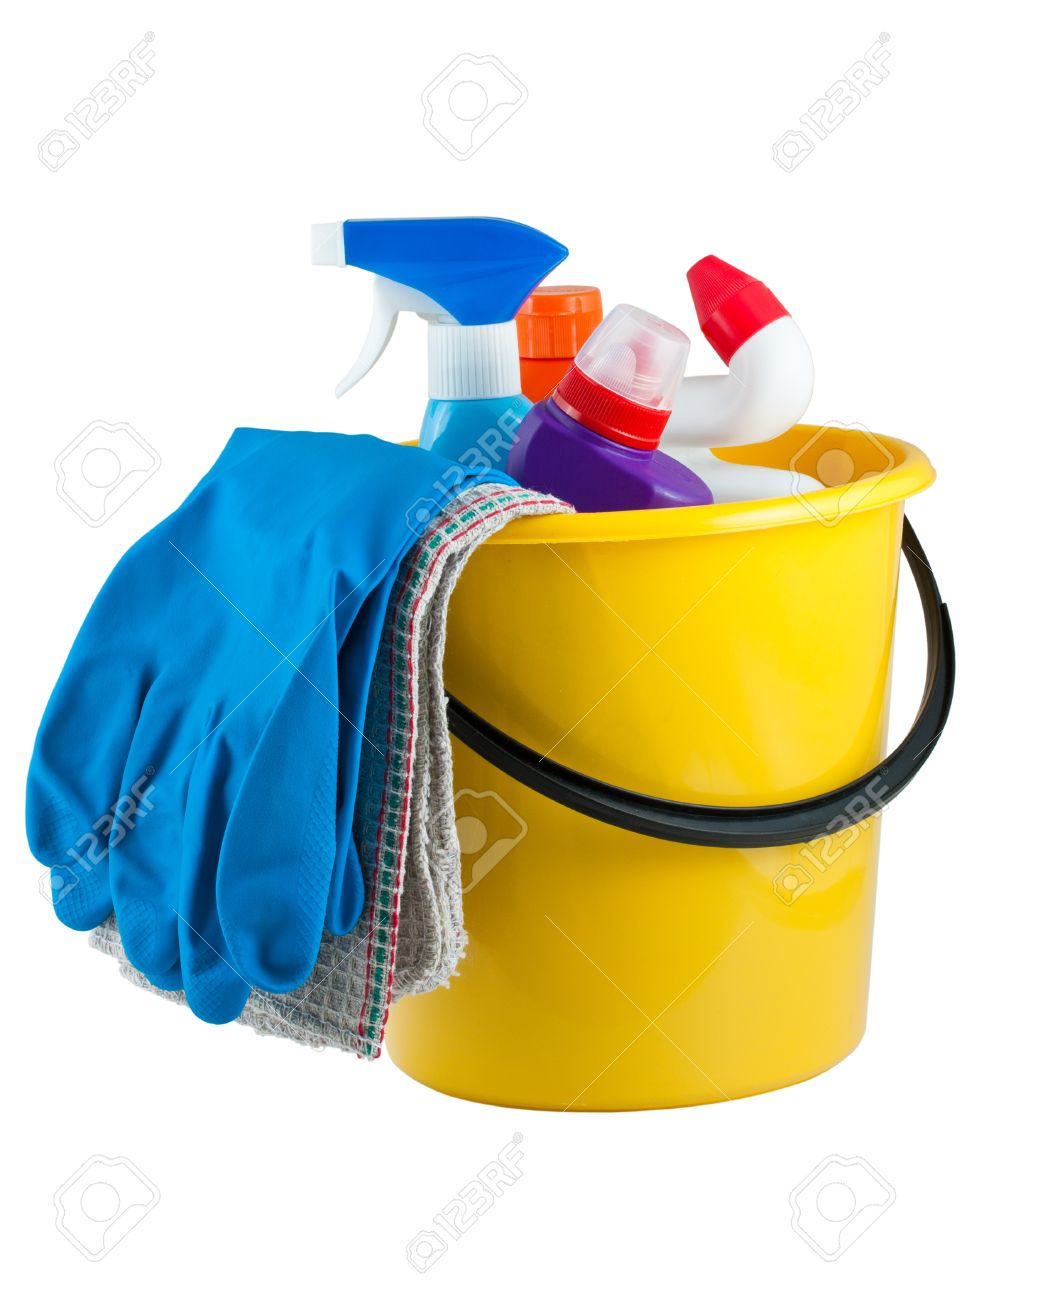 Yellow bucket with cleaning supplies isolated on white background Stock Photo - 11733199